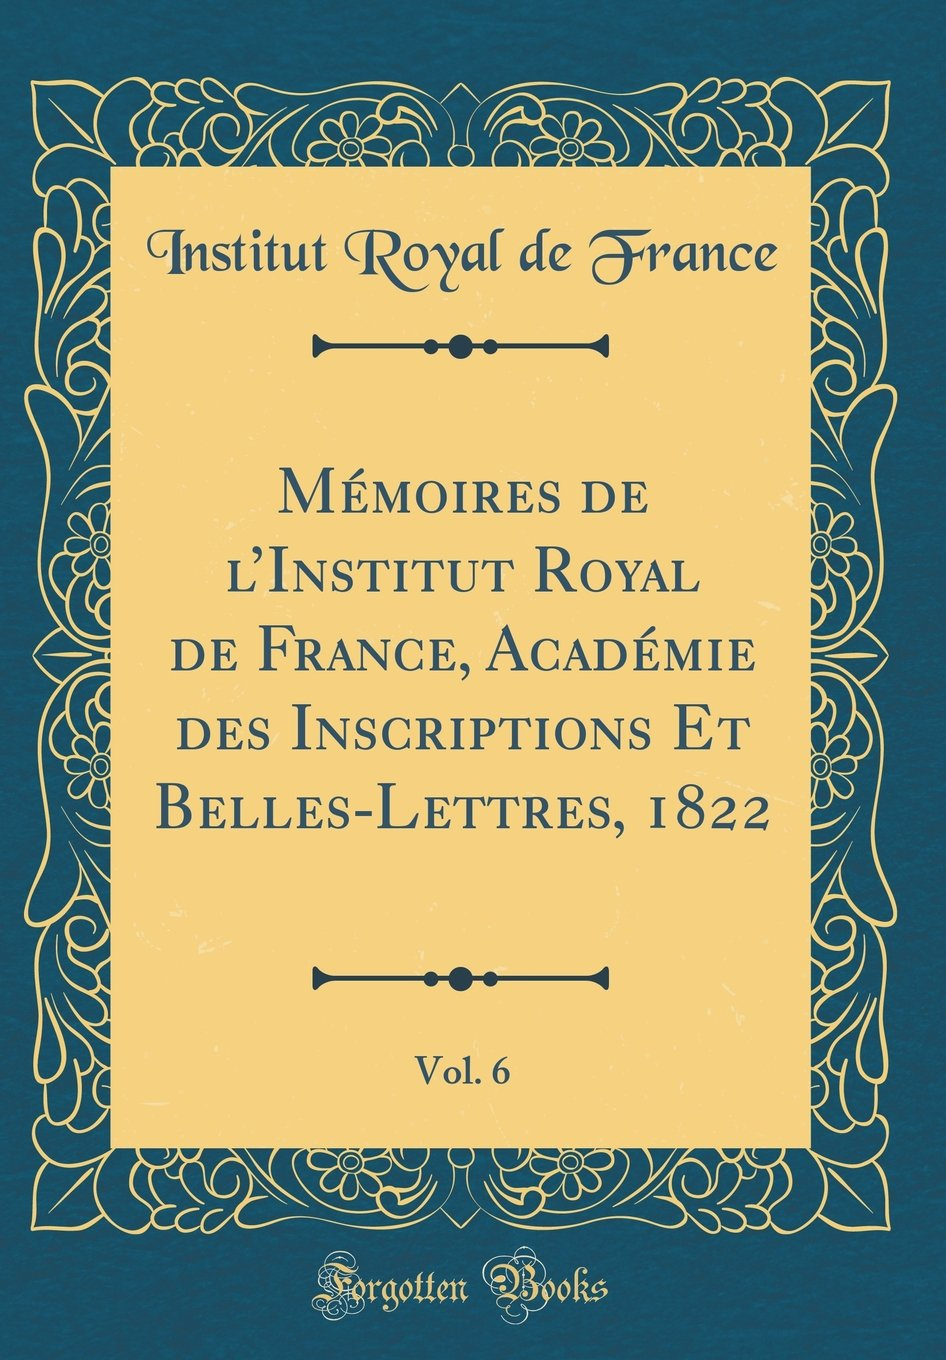 Mémoires de l'Institut Royal de France, Académie des Inscriptions Et Belles-Lettres, 1822, Vol. 6 (Classic Reprint) (French Edition) ebook